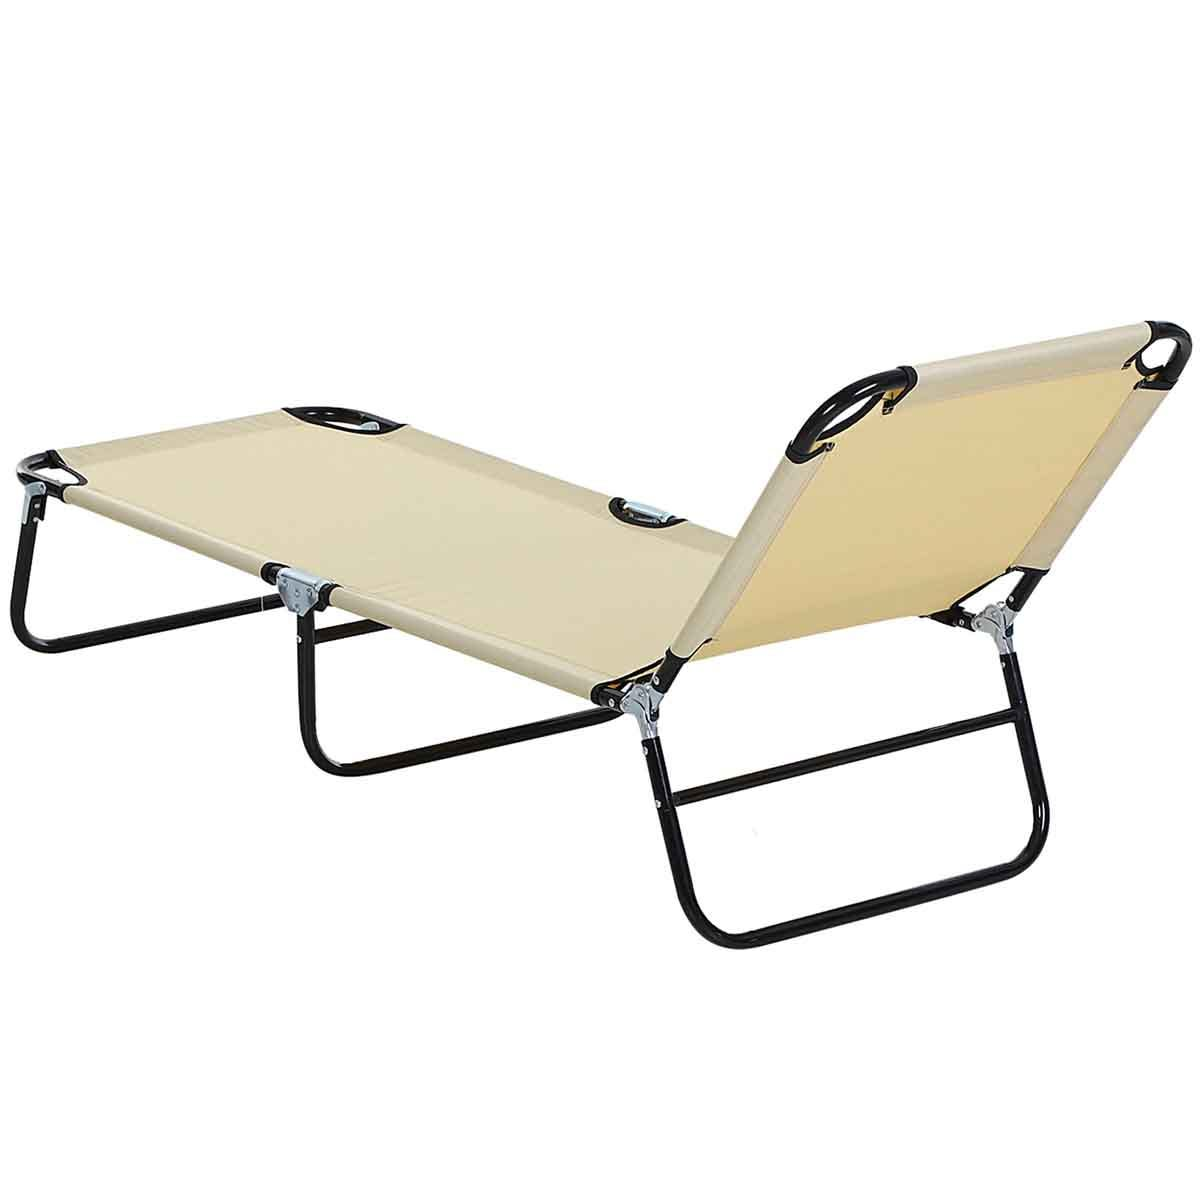 Outsunny Folding Sun Lounger Chair - Beige